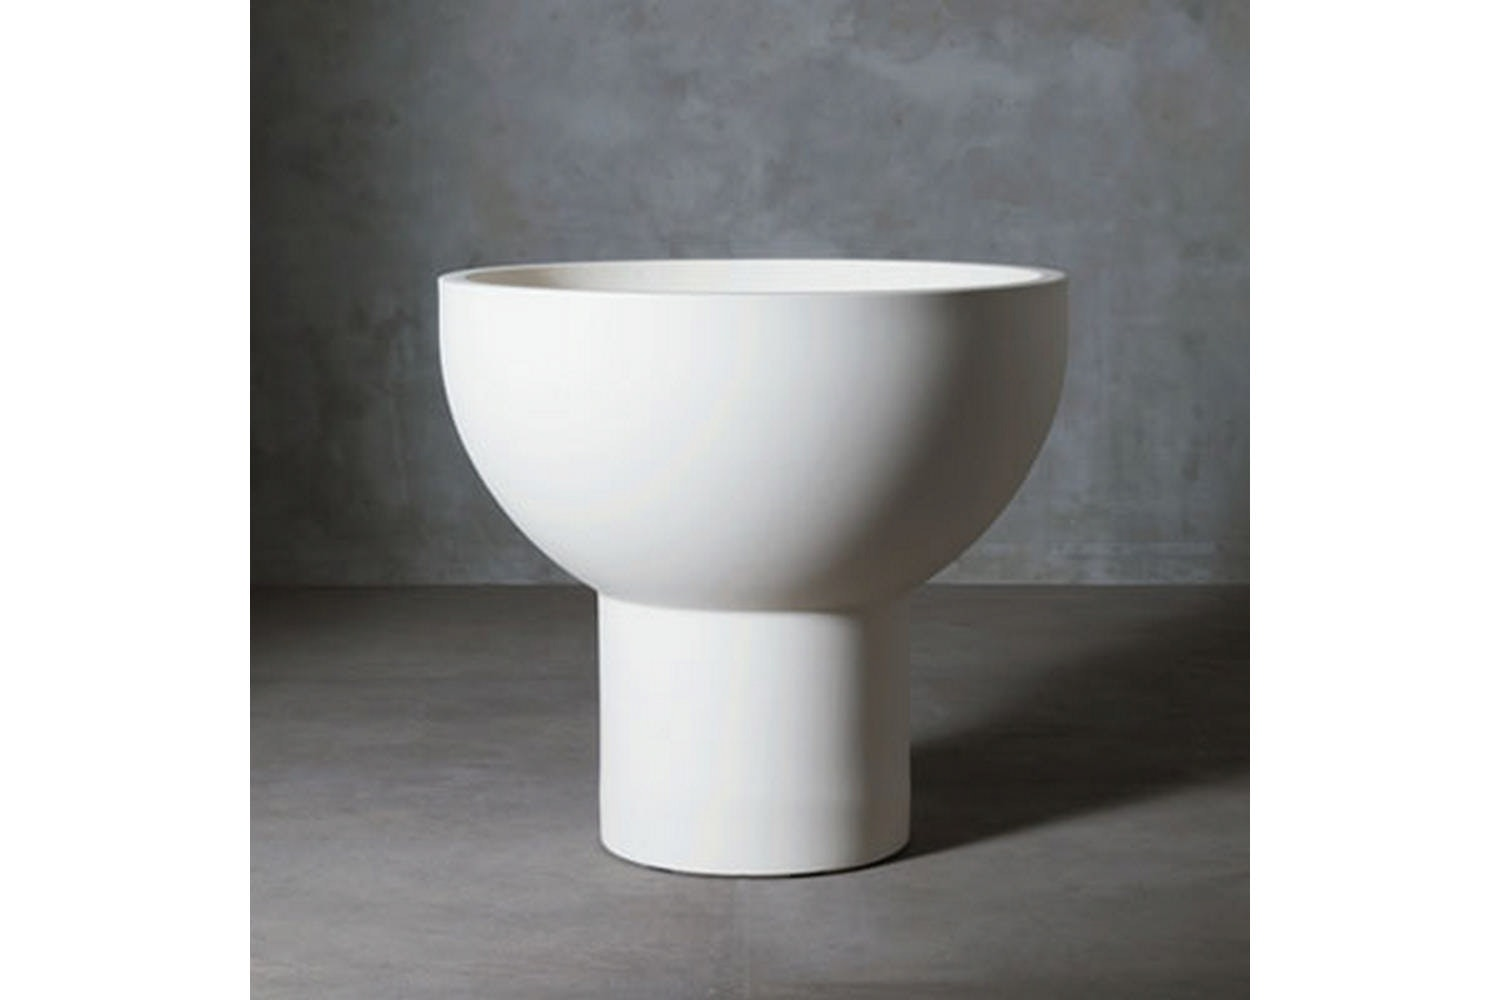 Primavera Pot by Eero Aarnio for Serralunga